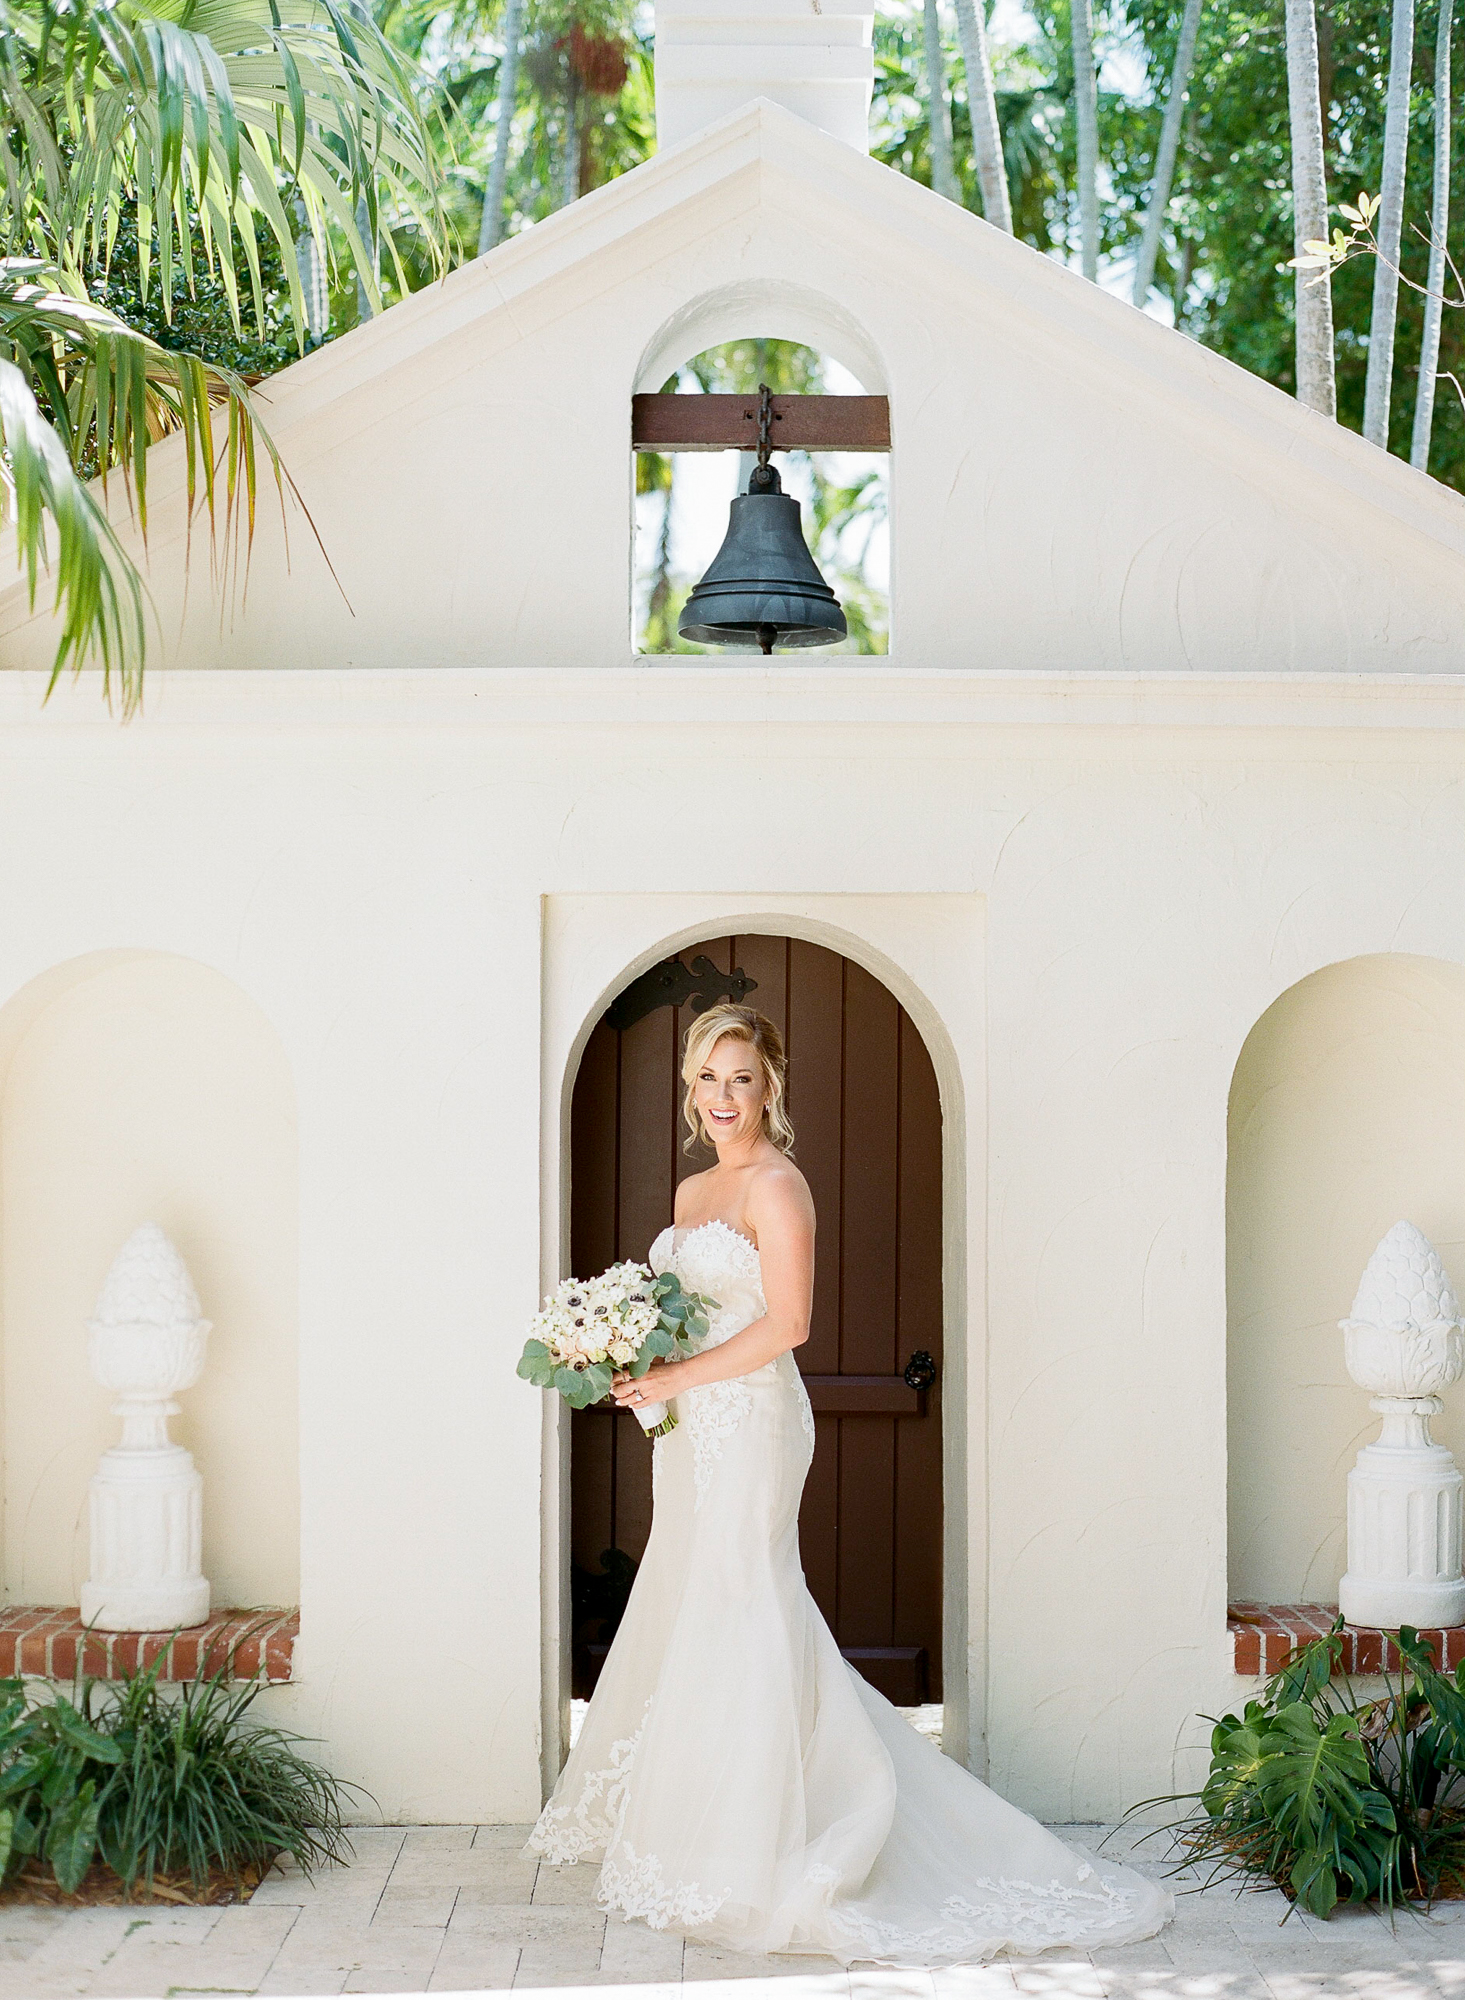 Bride stands in front of door and smiles at the camera with her bouquet wearing a strapless gown.